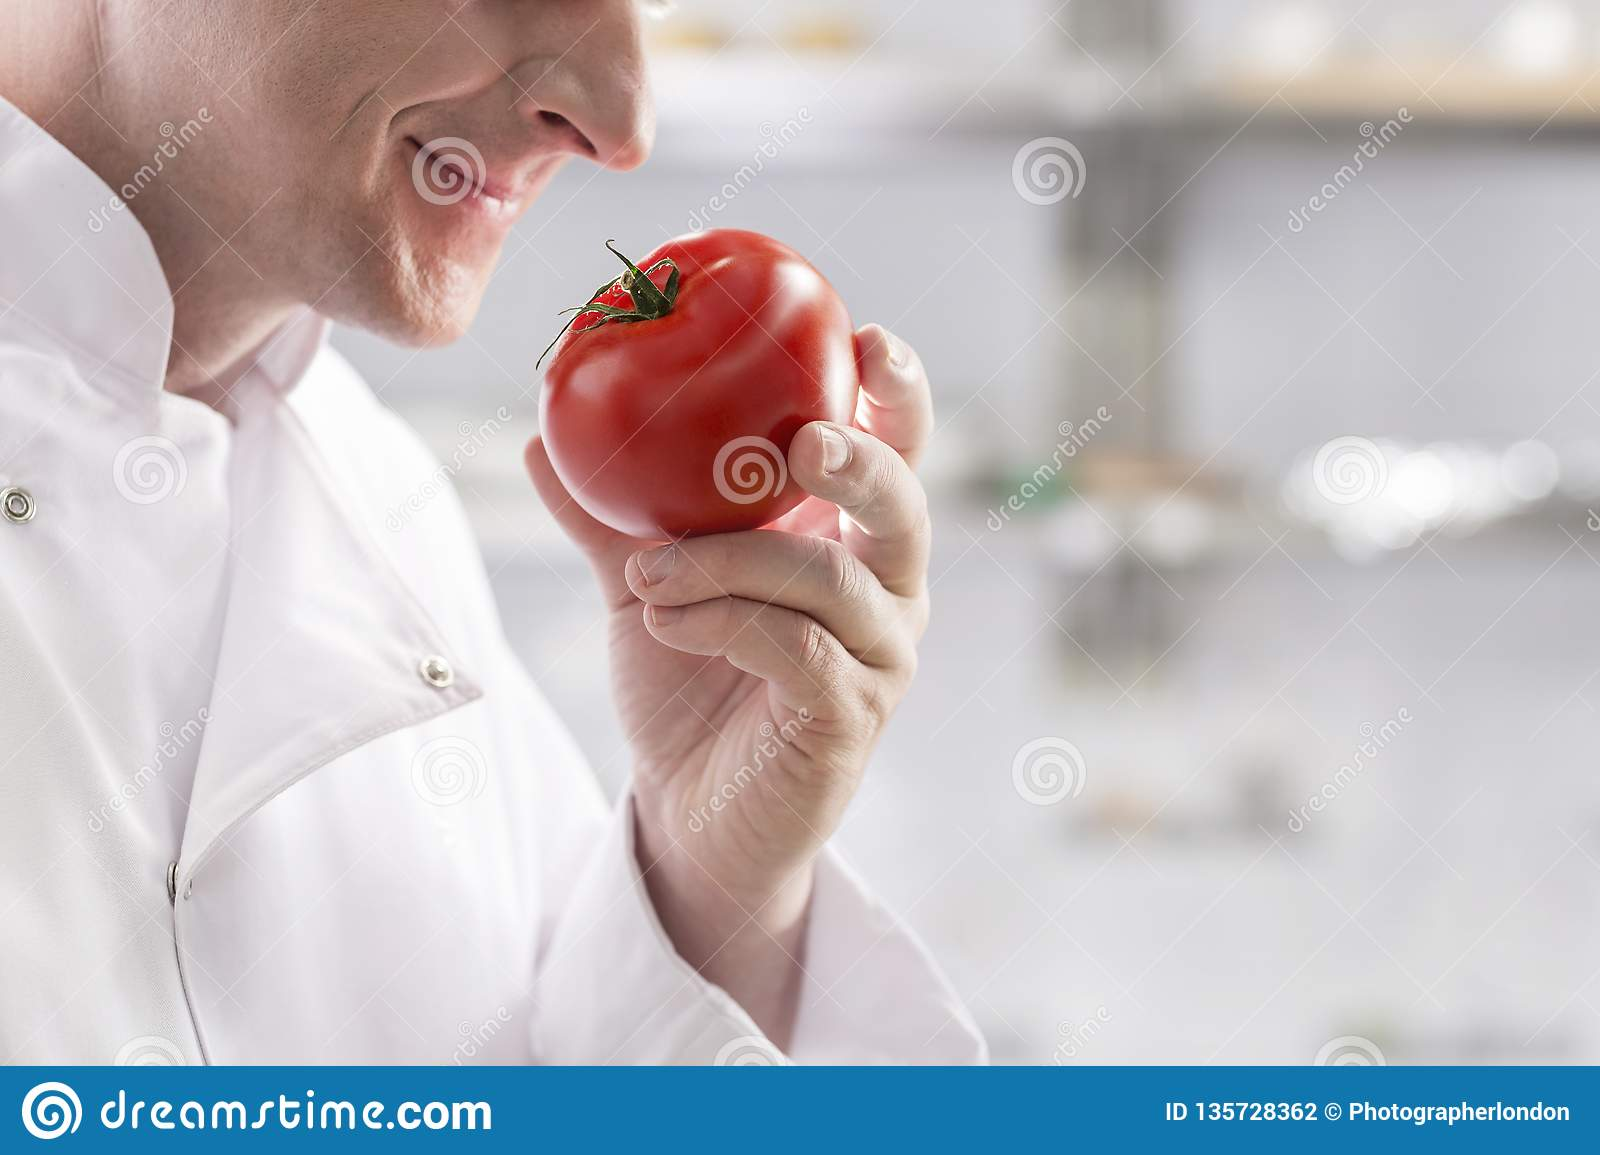 Midsection of mature chef smelling fresh red tomato while standing at restaurant kitchen